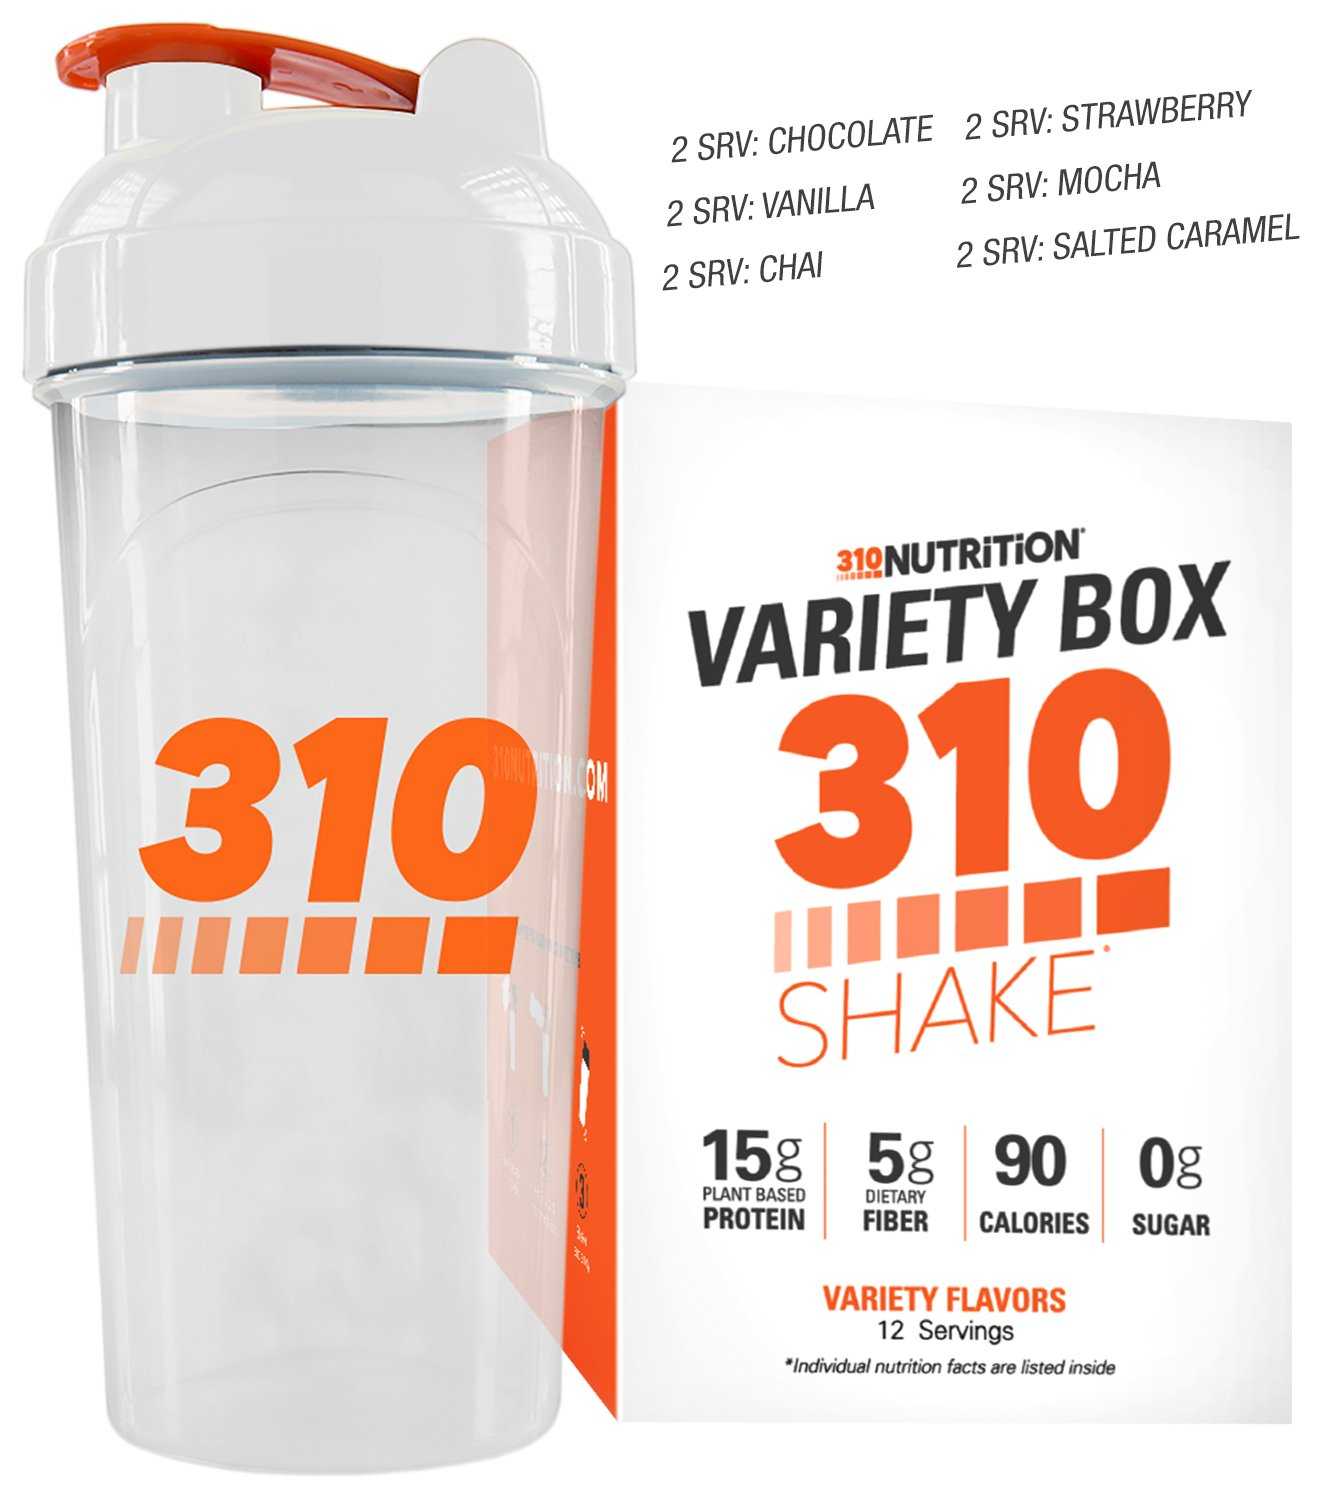 310 Shake Variety Box Includes 310 Shaker - 12 Individual Servings - Find Your Favorite Flavor, Choose From Chocolate, Vanilla, Vanilla Chai, Strawberry, Mocha, and Salted Caramel